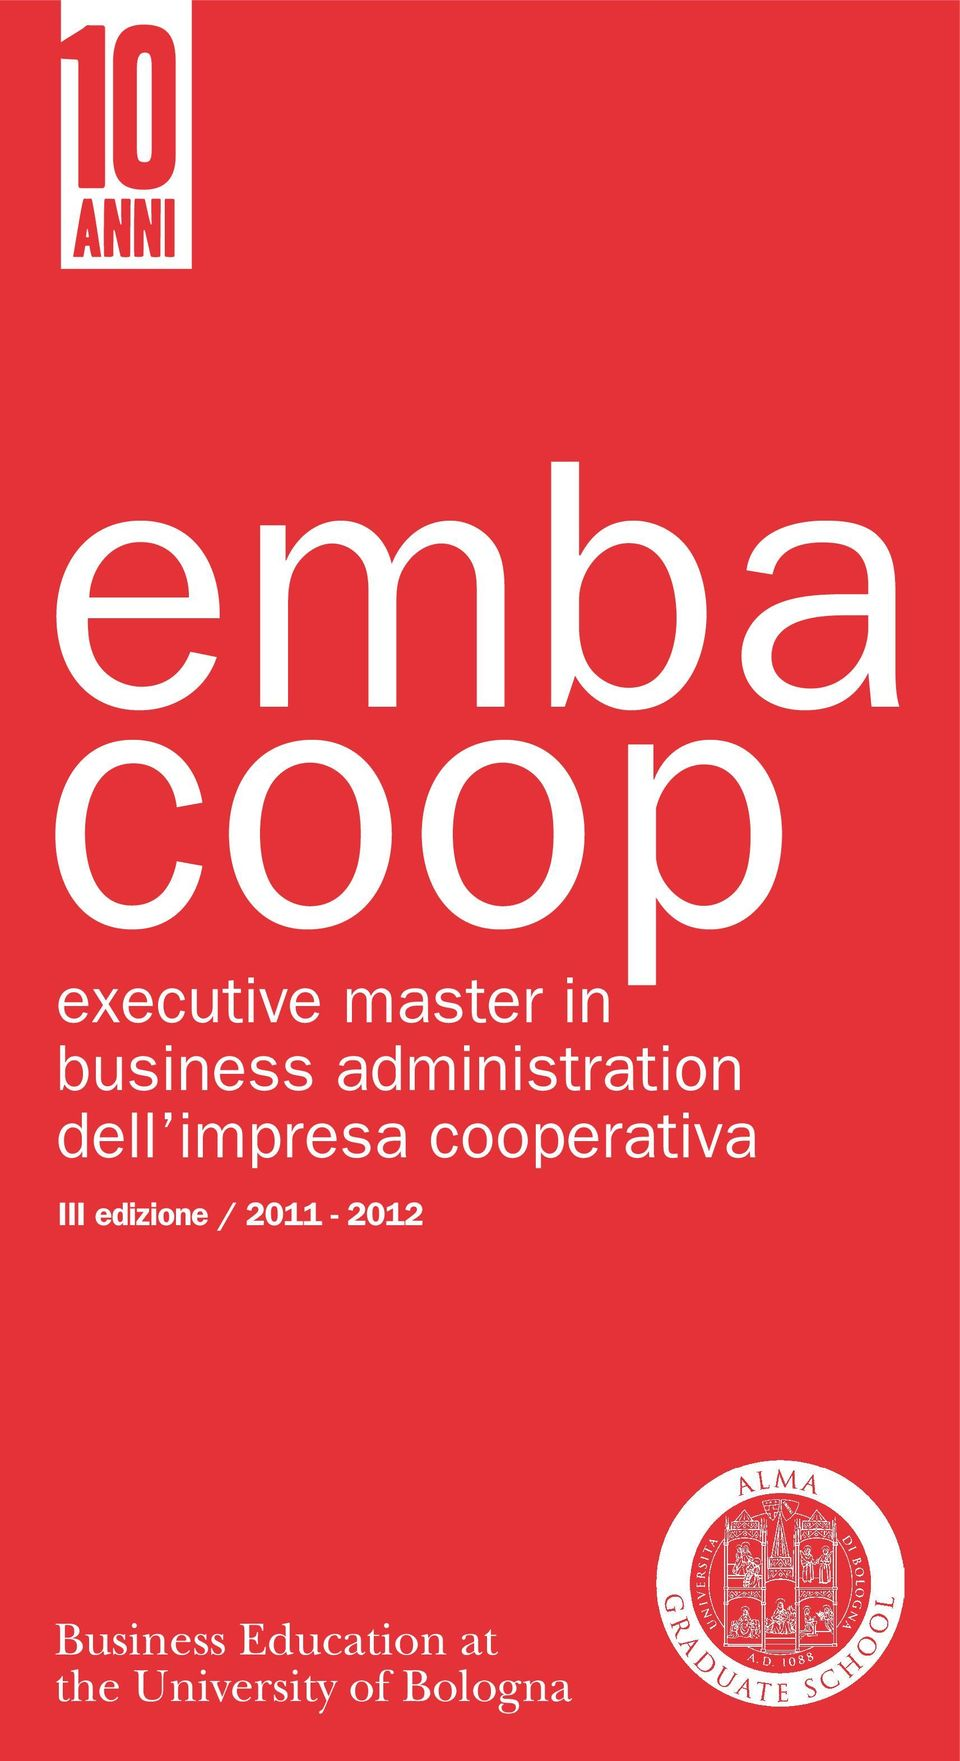 Business Education at the University of Bologna